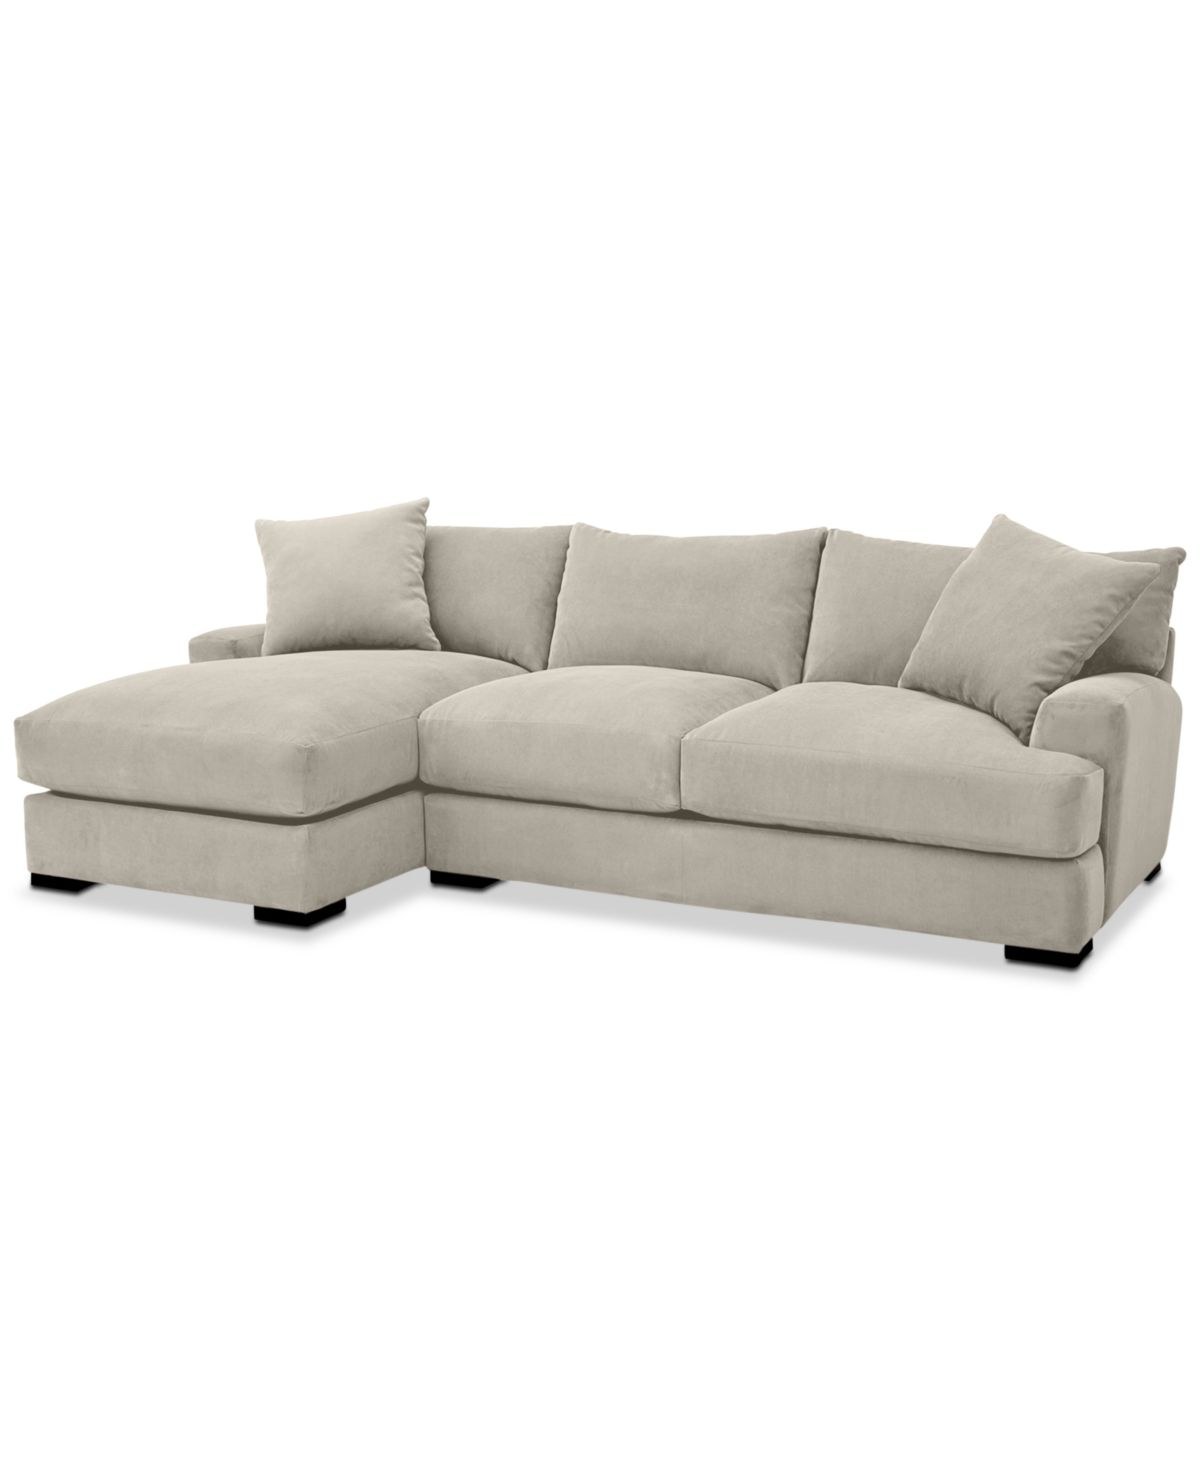 Rhyder 2 Pc Fabric Sectional Sofa With Chaise Created For Macy S